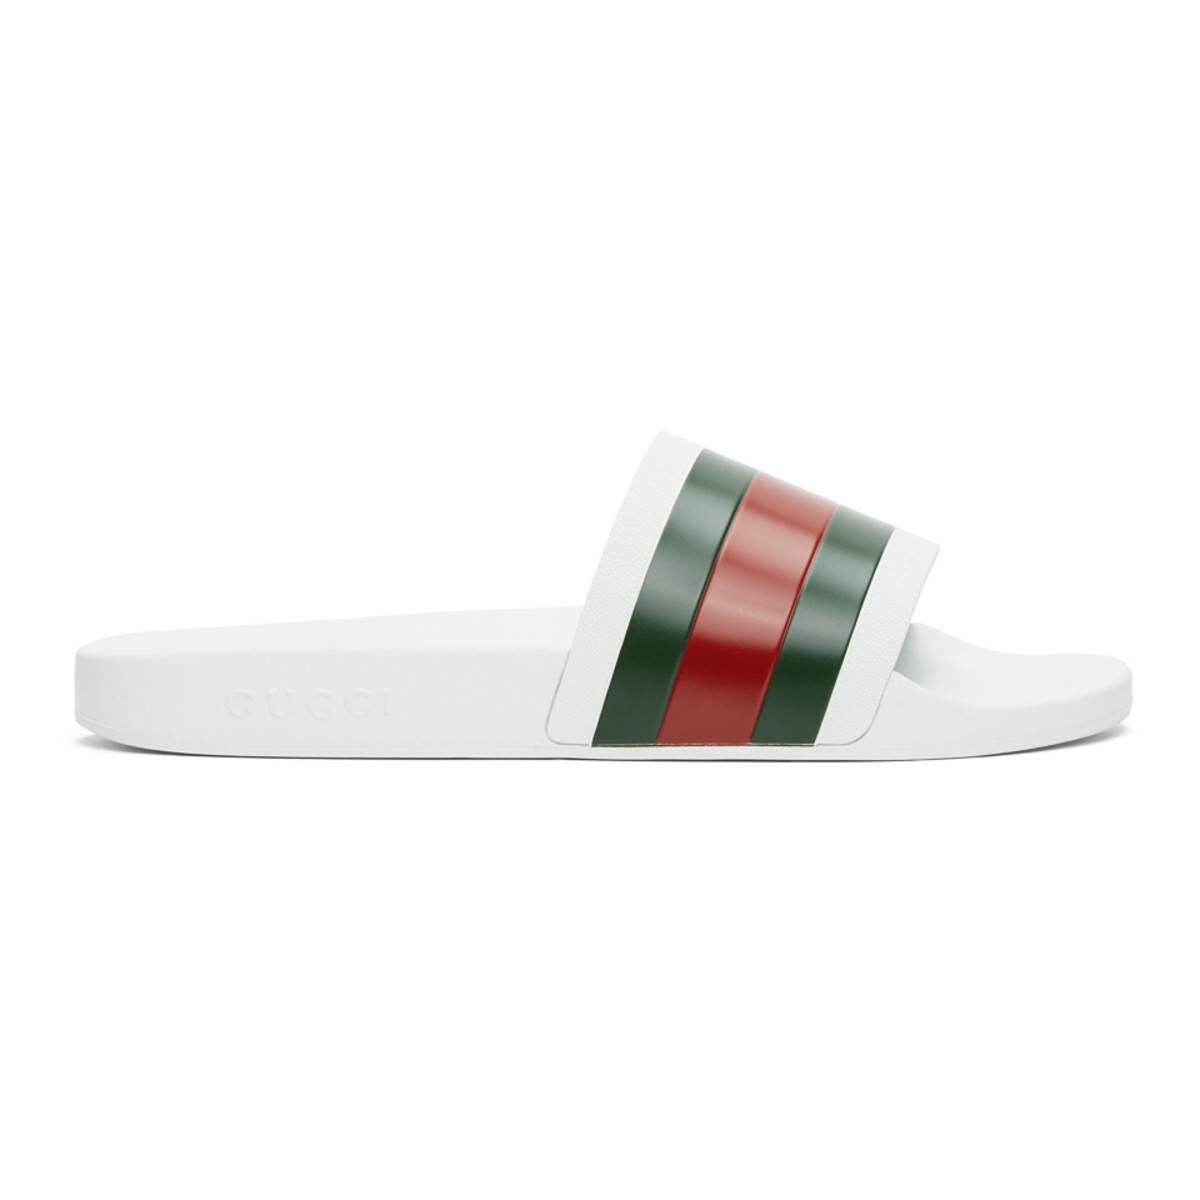 Gucci White Pursuit slides Ssense USA MEN Men SHOES Mens SANDALS